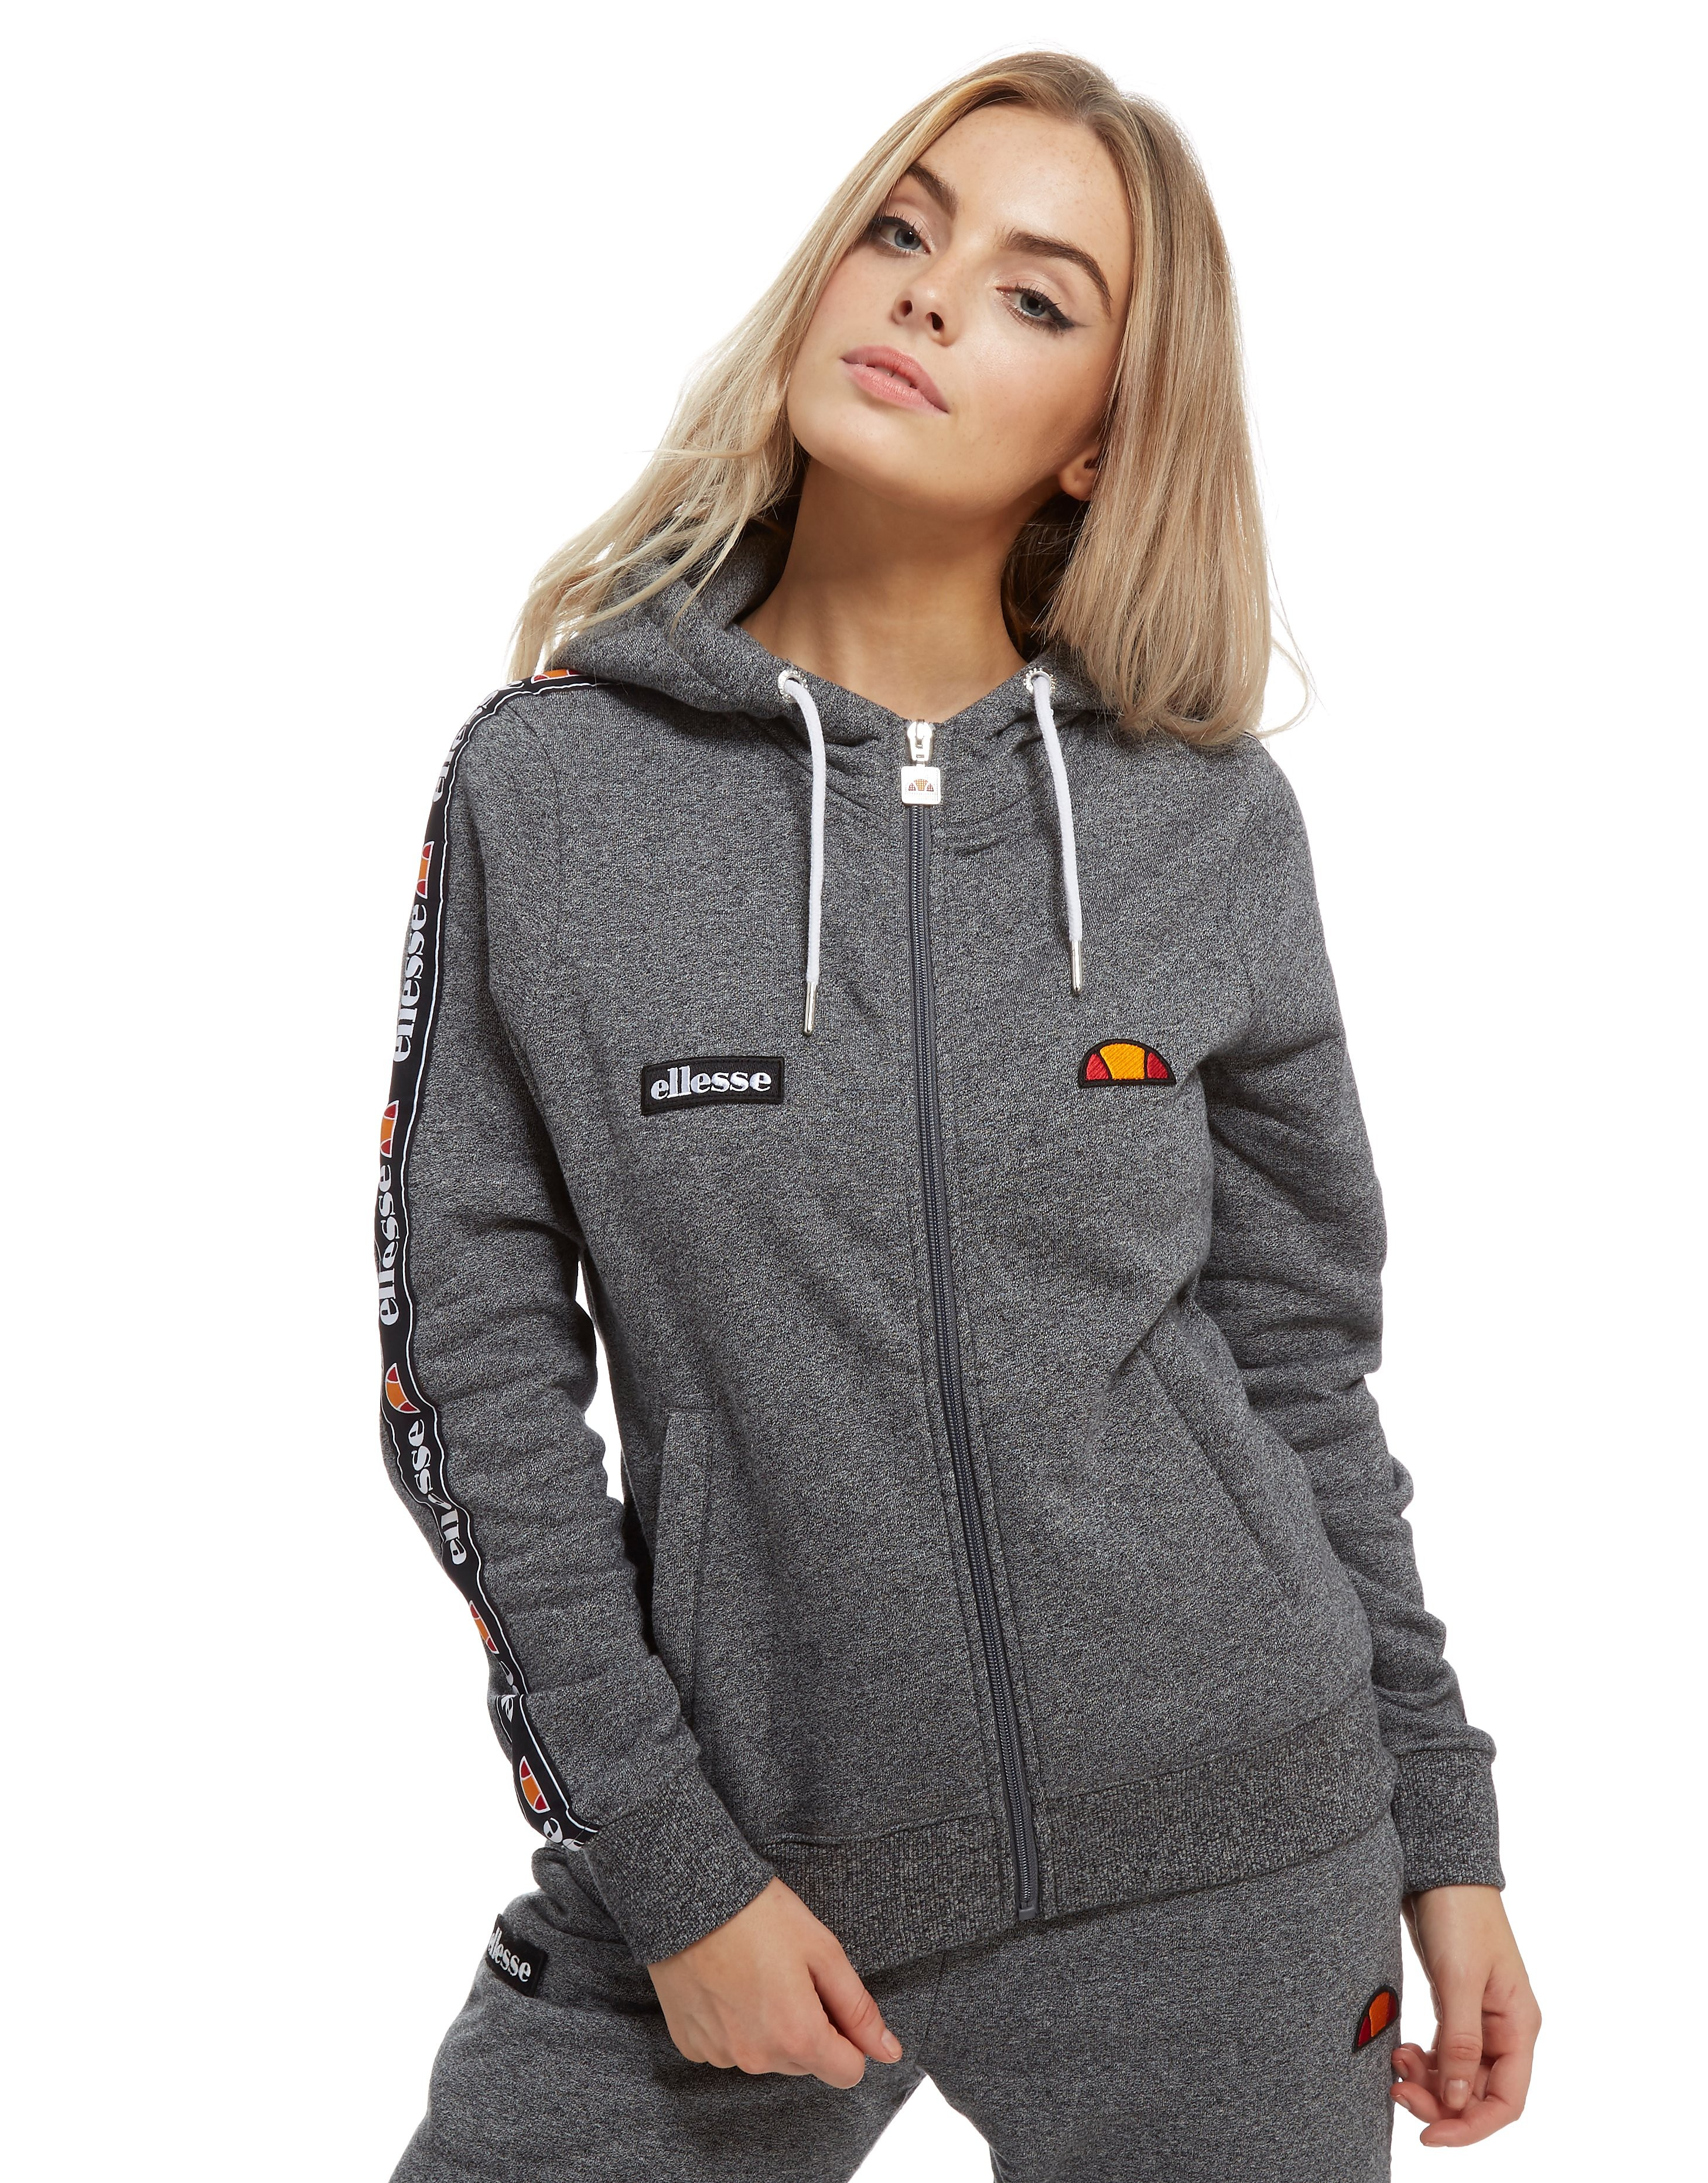 Ellesse Tape Fleece Full Zip Hoodie